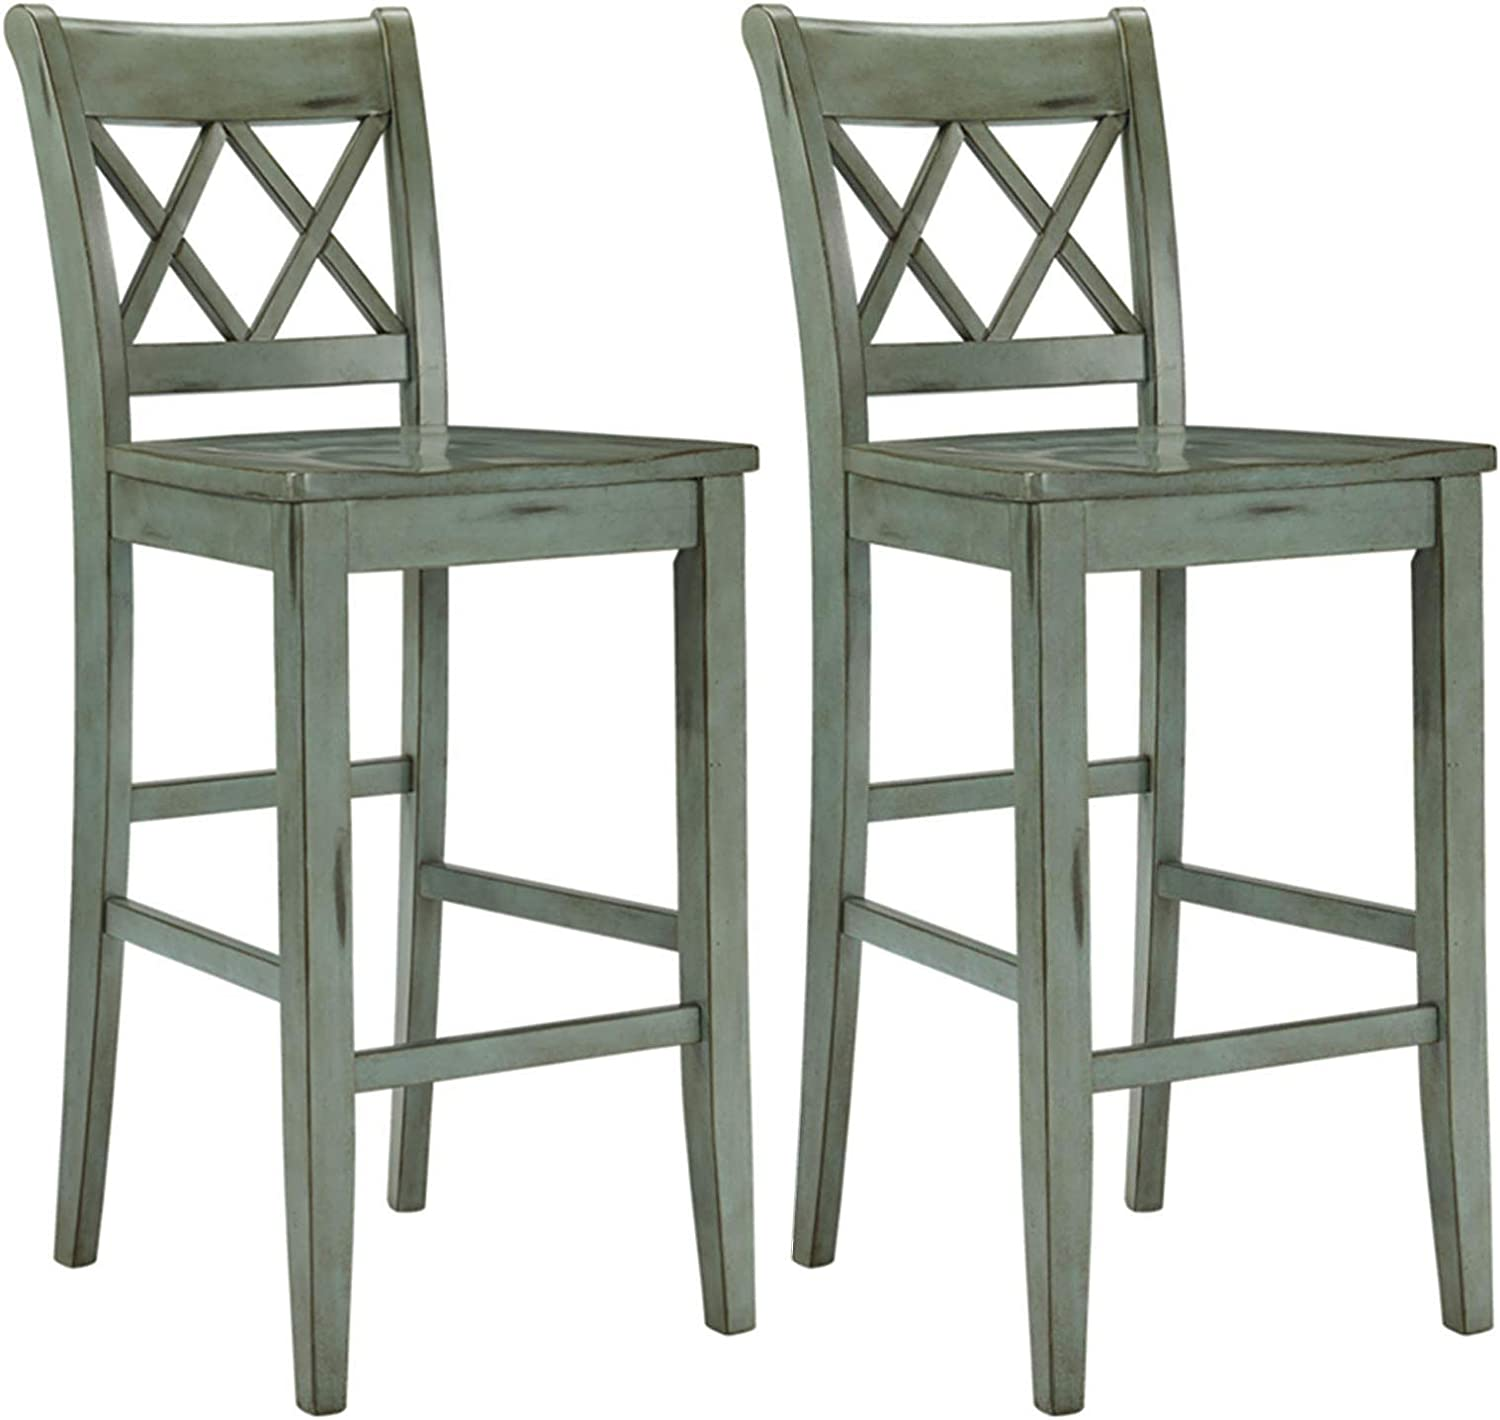 Ashley Furniture Signature Design – Mestler Bar Stool – Pub Height – Vintage Casual Style – Set of 2 – Blue Green